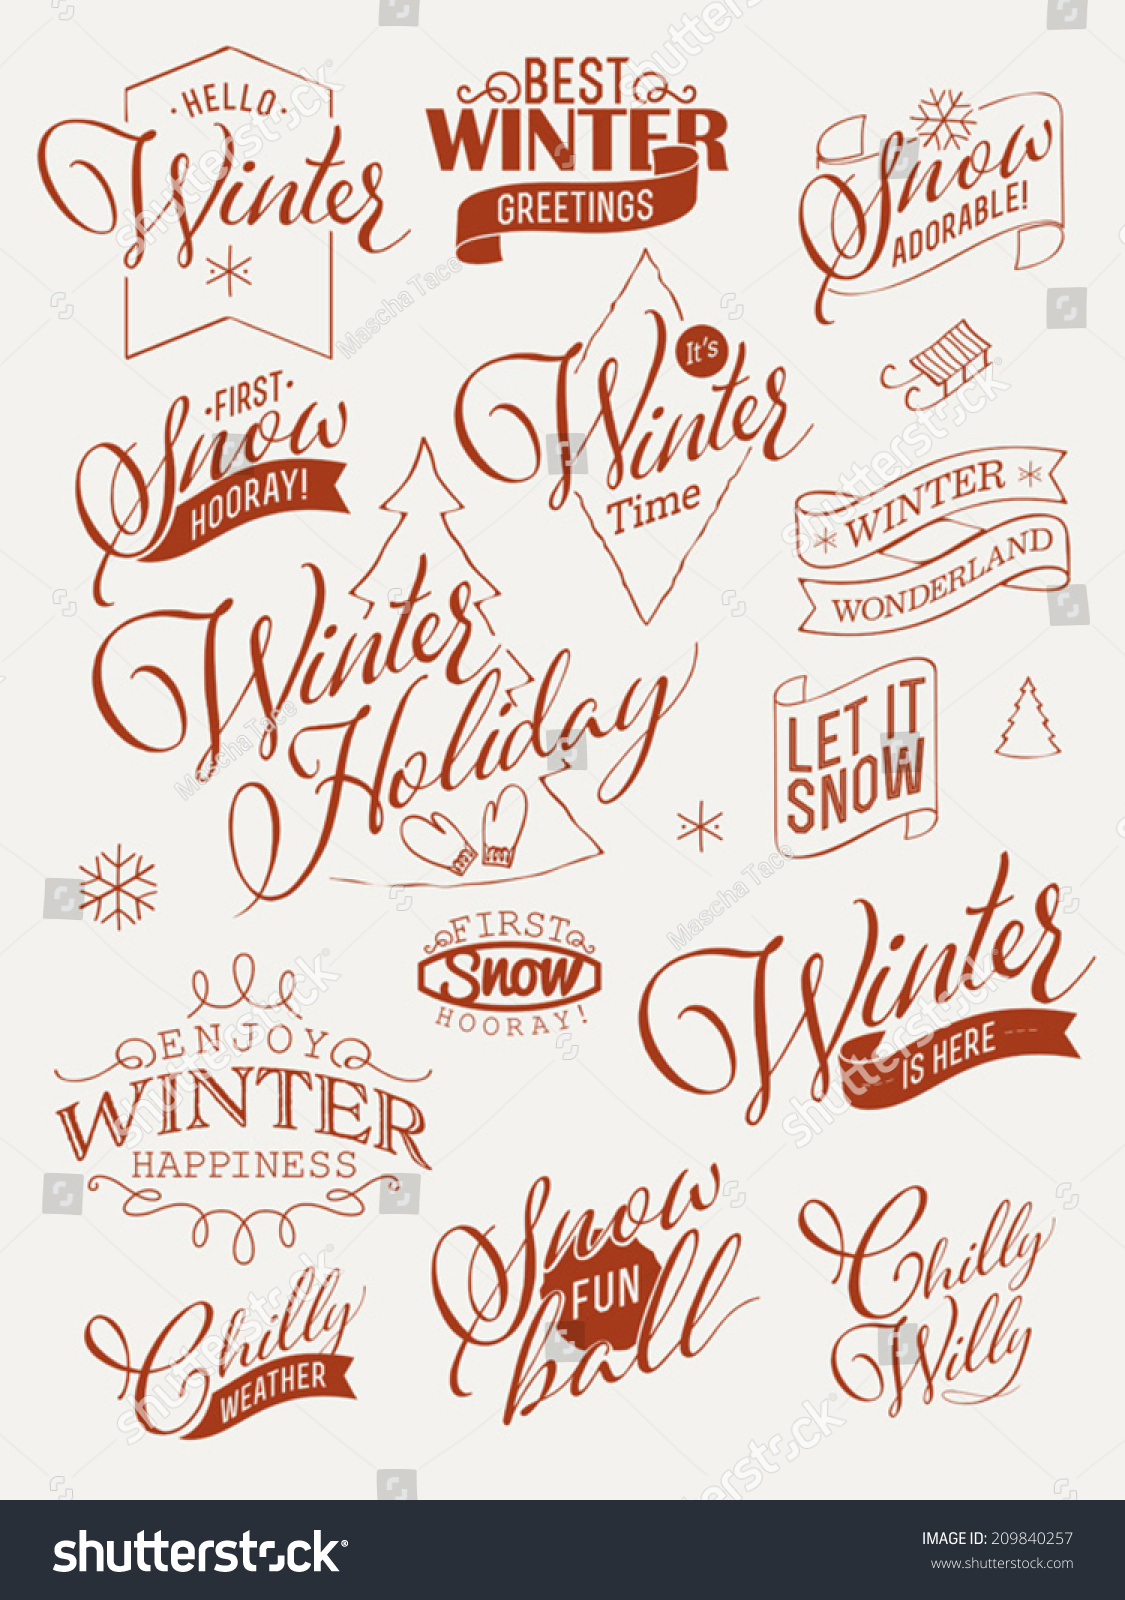 Vector collection retro styled winter design stock vector vector collection of retro styled winter design elements featuring phrases about snow cold weather kristyandbryce Gallery